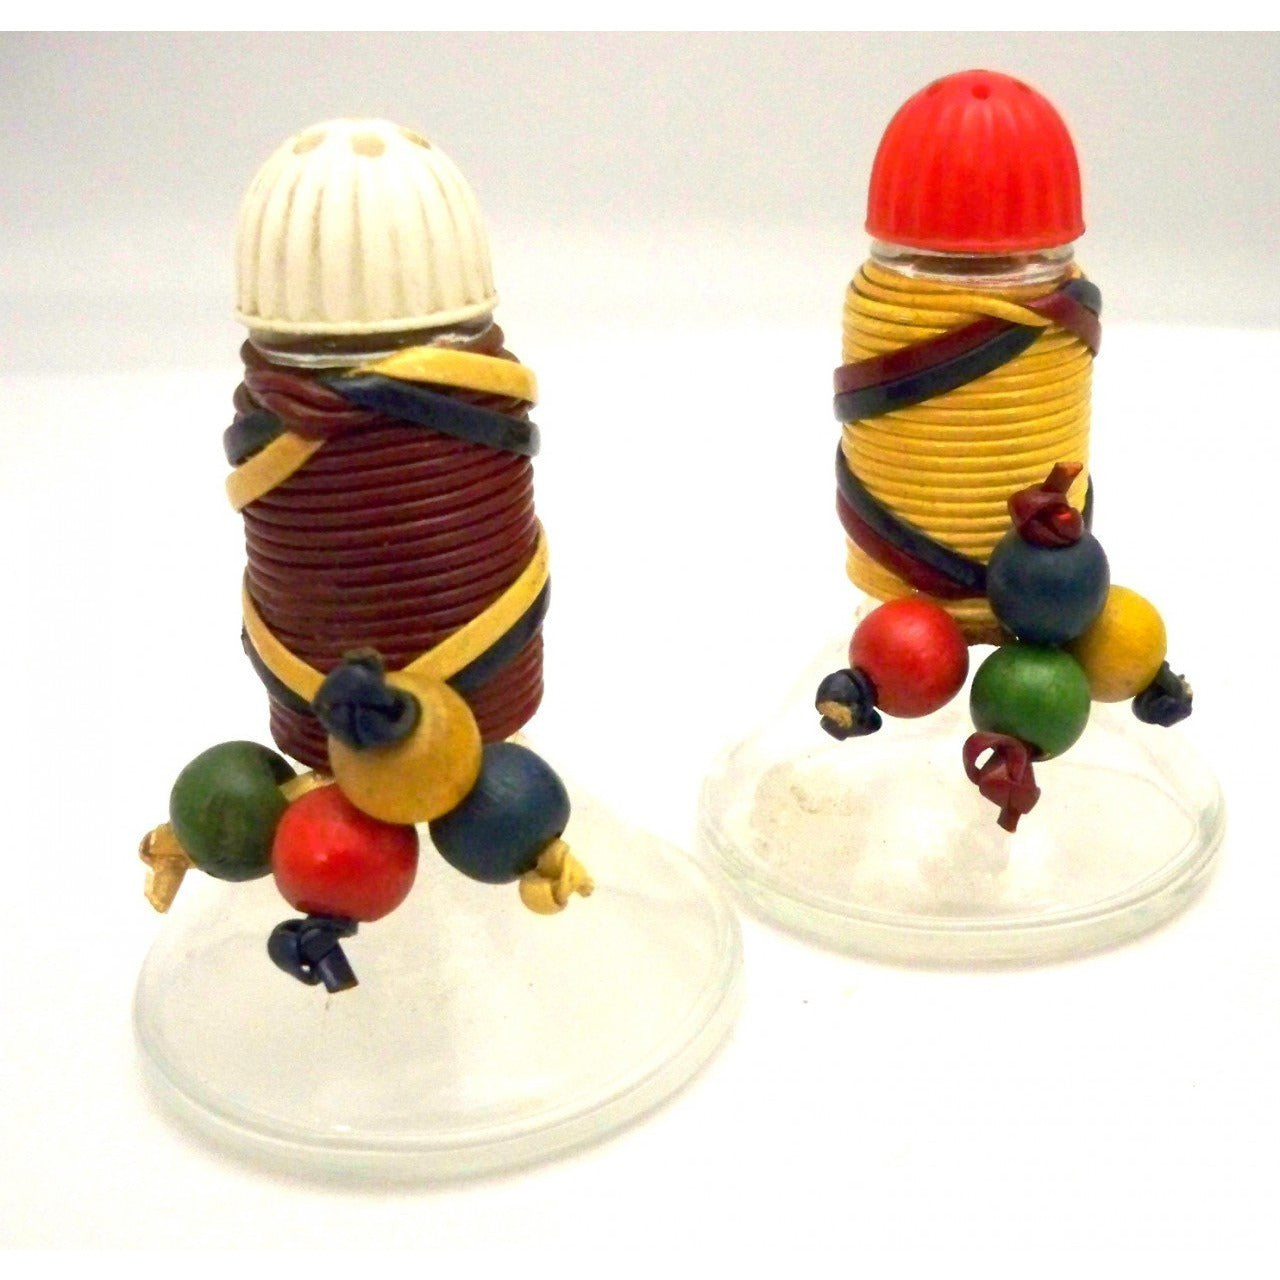 Vintage Salt & Pepper Shakers Bakelite Colors 1940s - The Best Vintage Clothing  - 1